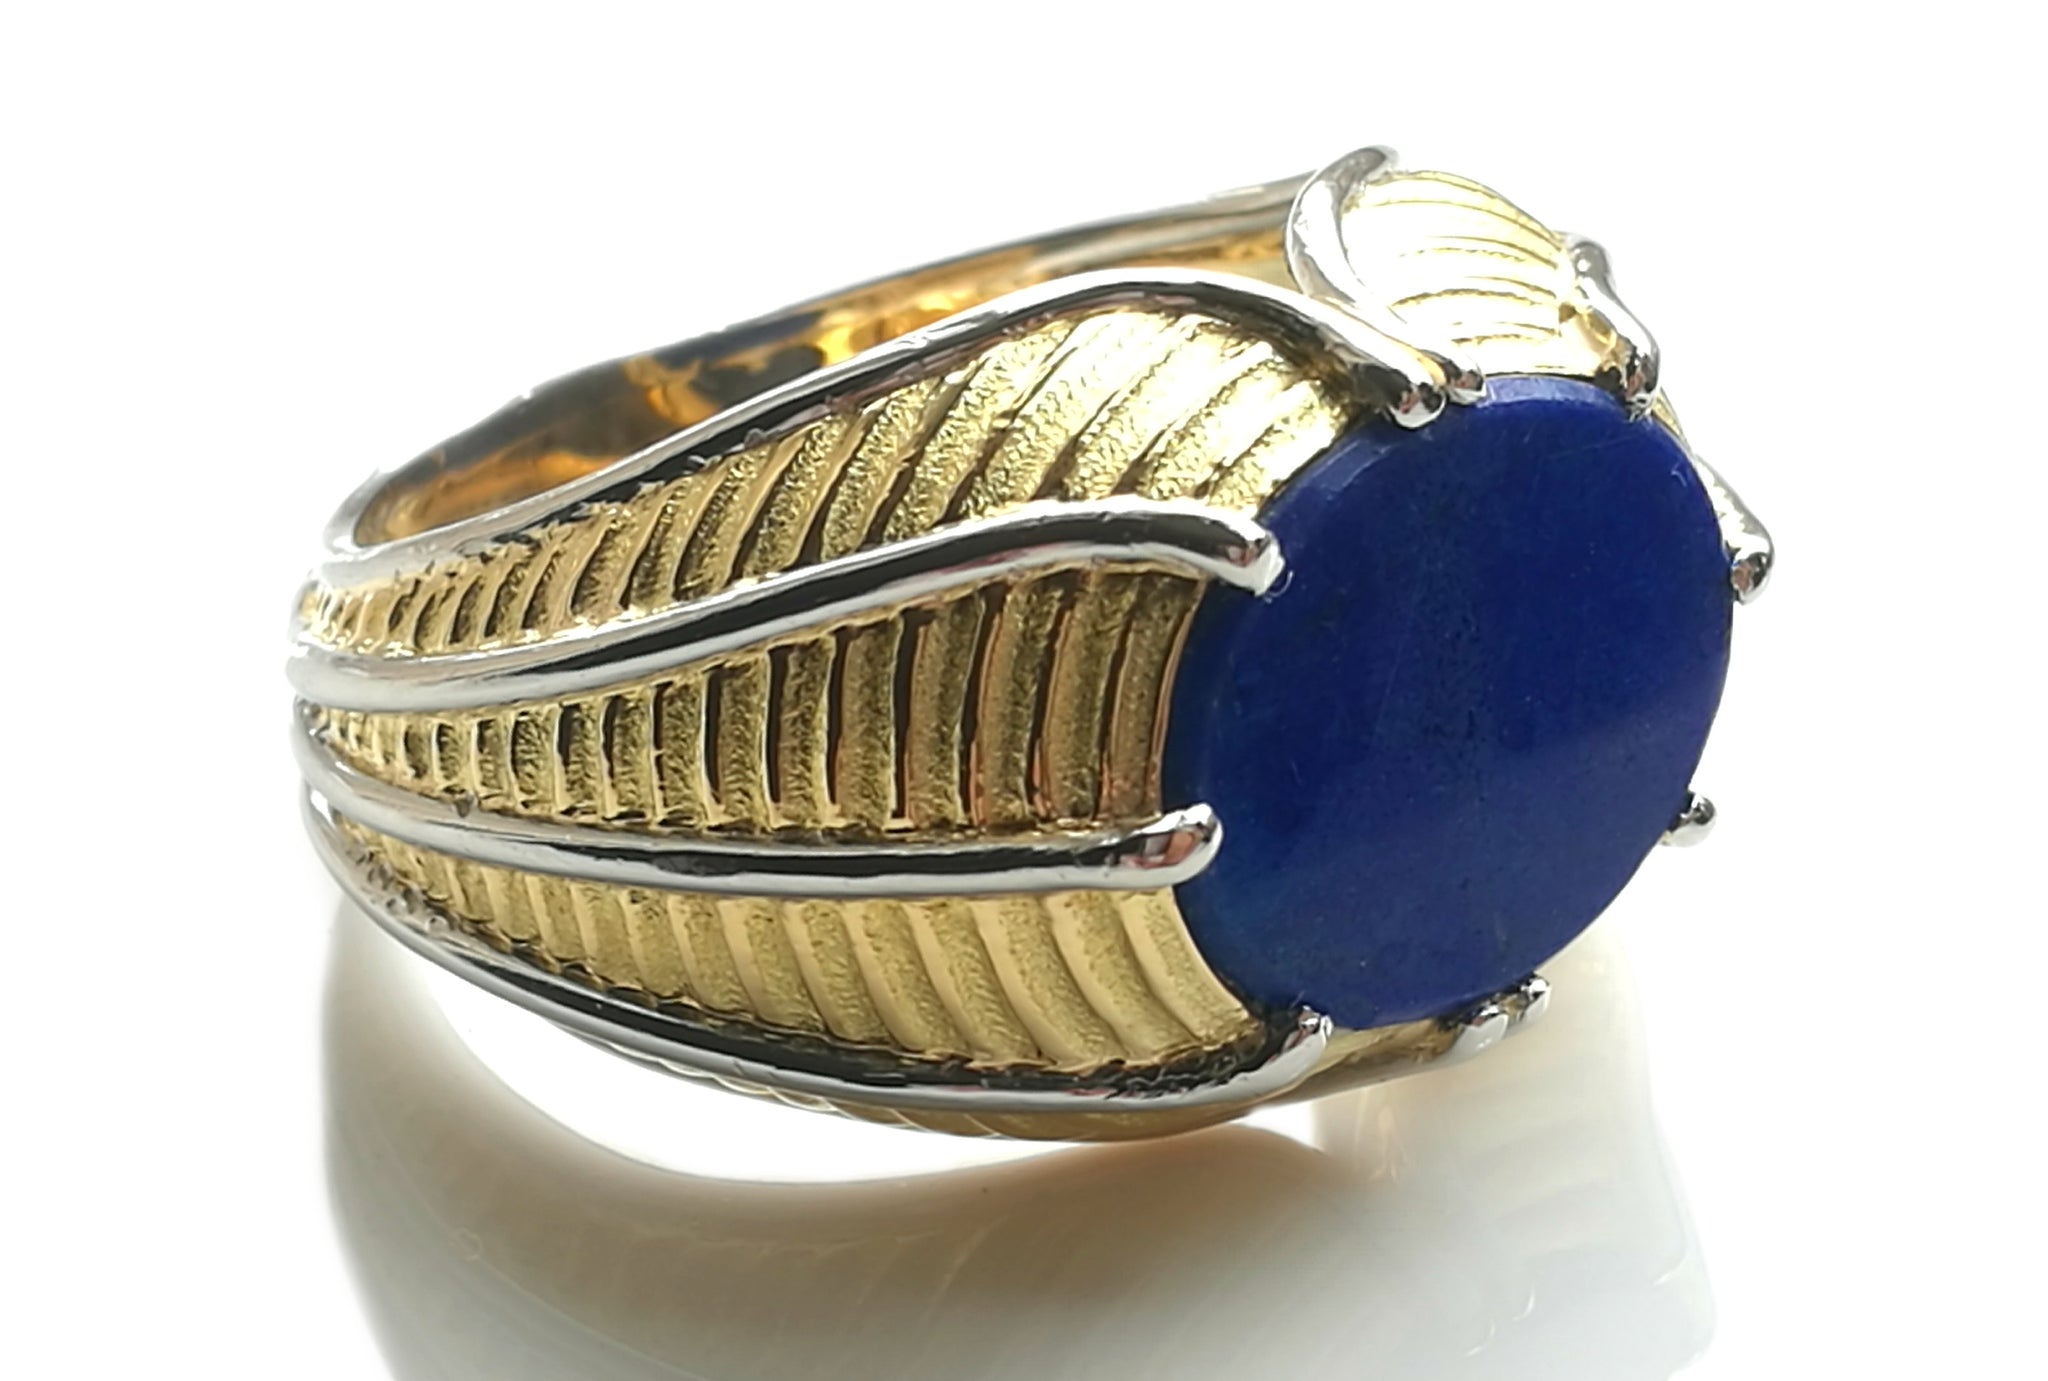 Vintage Tiffany & Co. Schlumberger Mens Lapis Lazuli & 18k Yellow Gold Ring, Size T